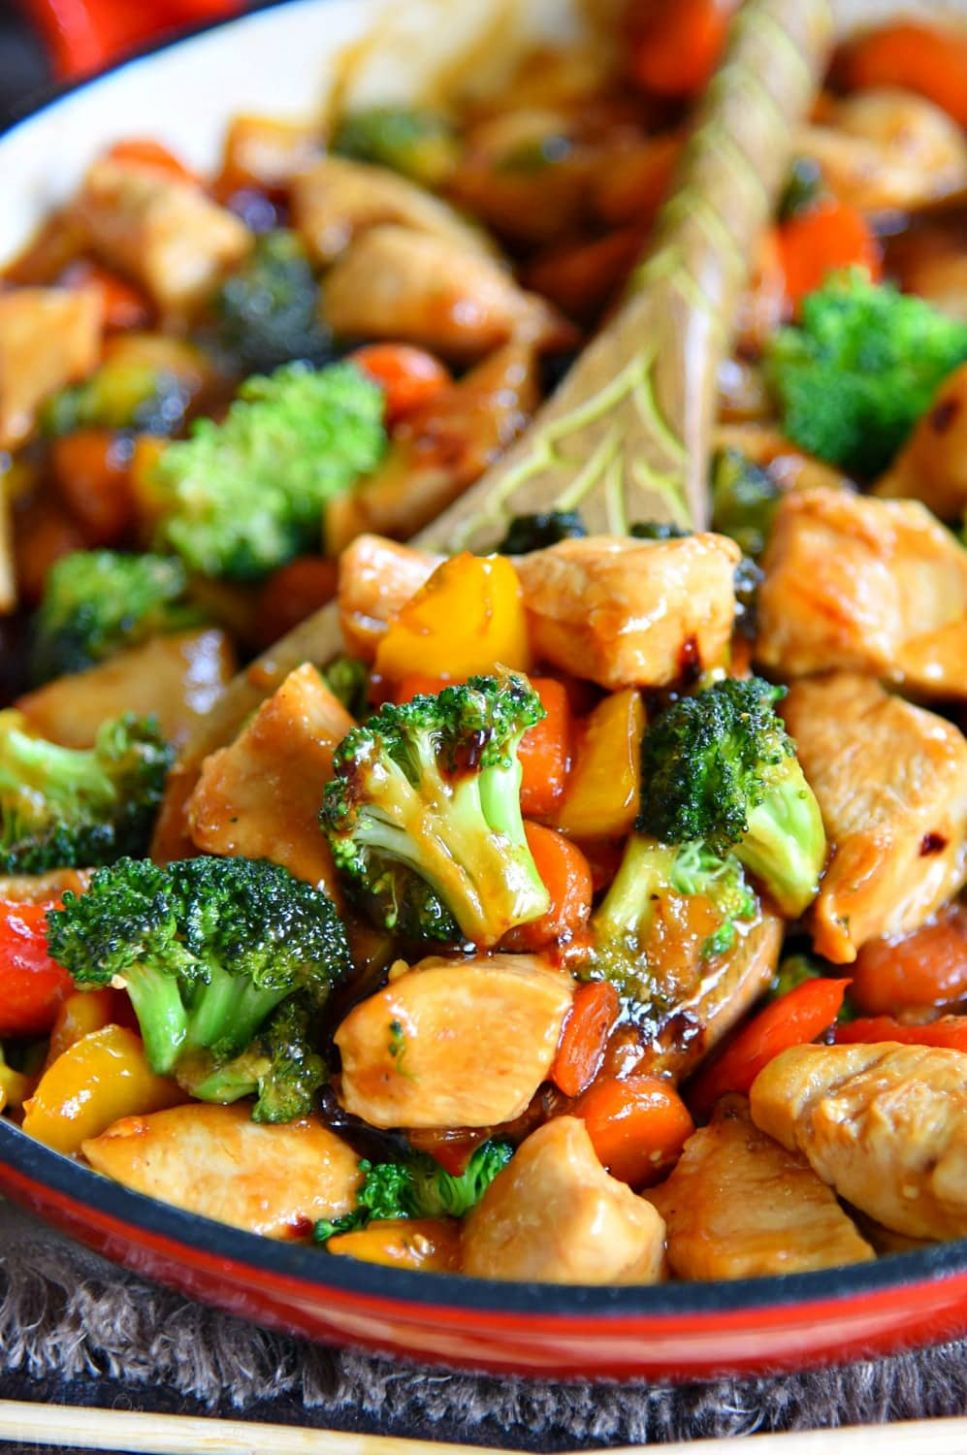 Chicken Stir Fry Recipe - Simple Recipes Of Chicken